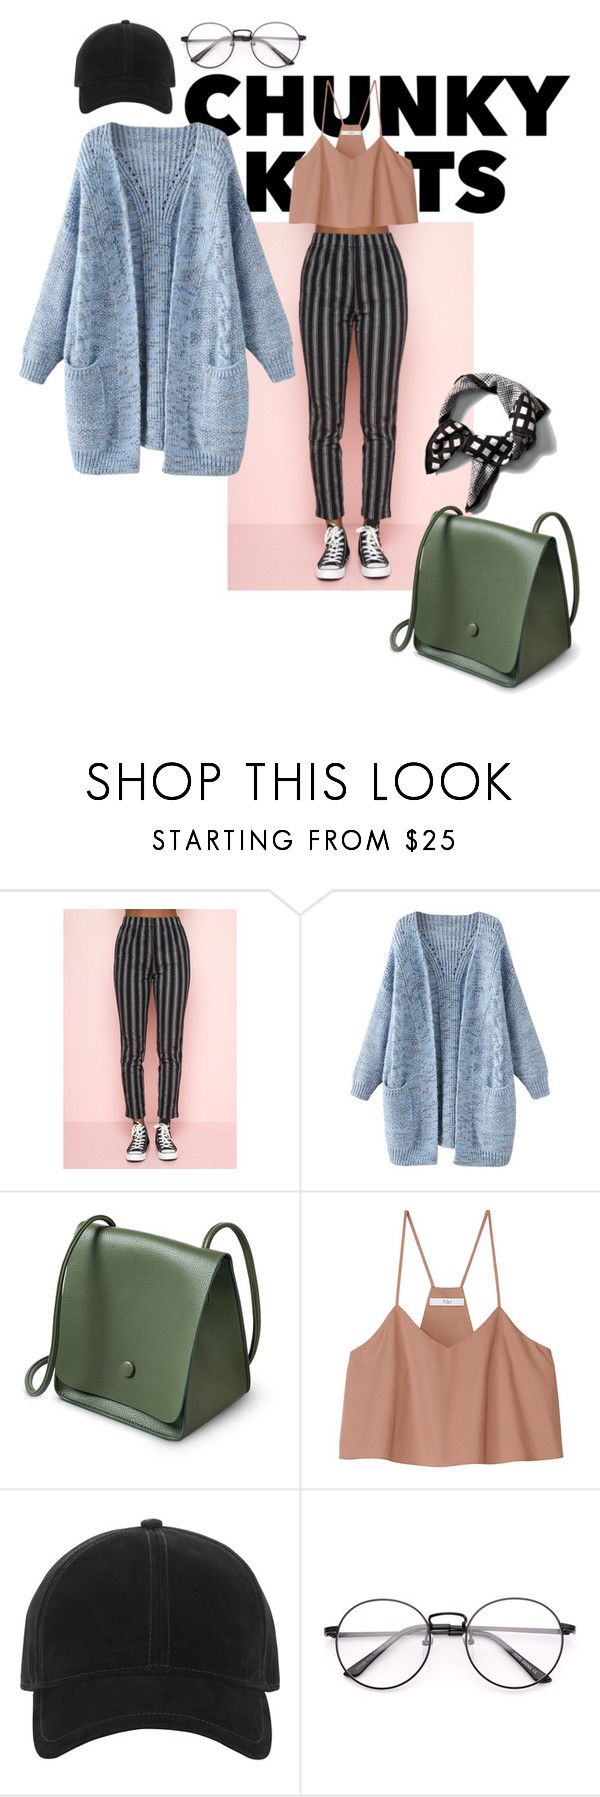 """chunky Tuesday"" by nover on Polyvore featuring TIBI, rag & bone and Banana Republic"